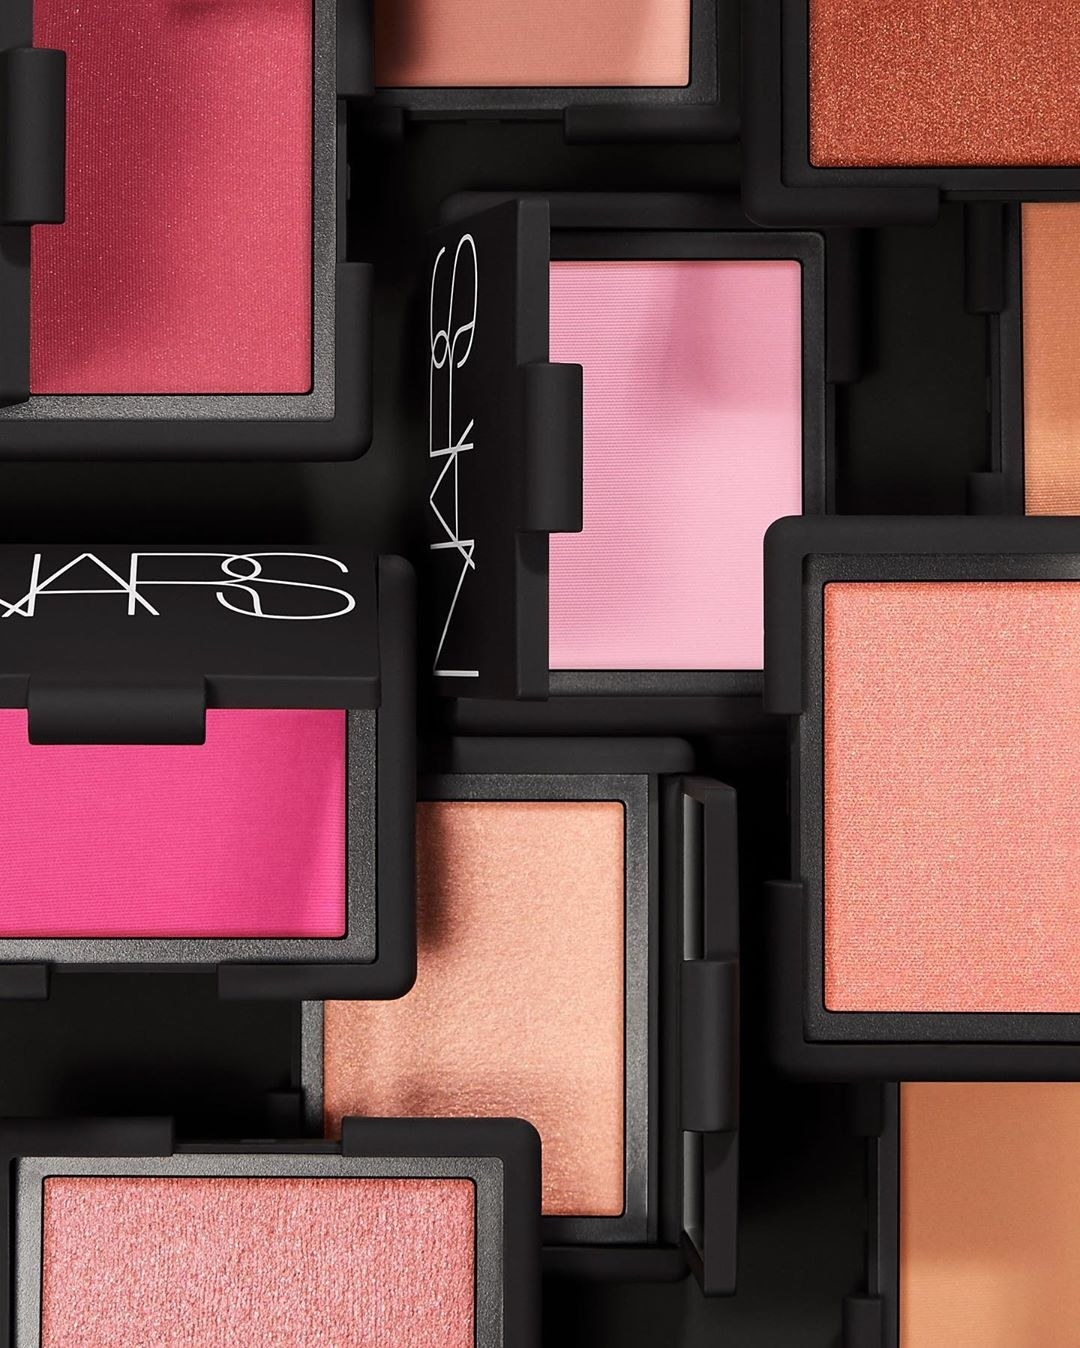 The blush in various shades of nude and pink